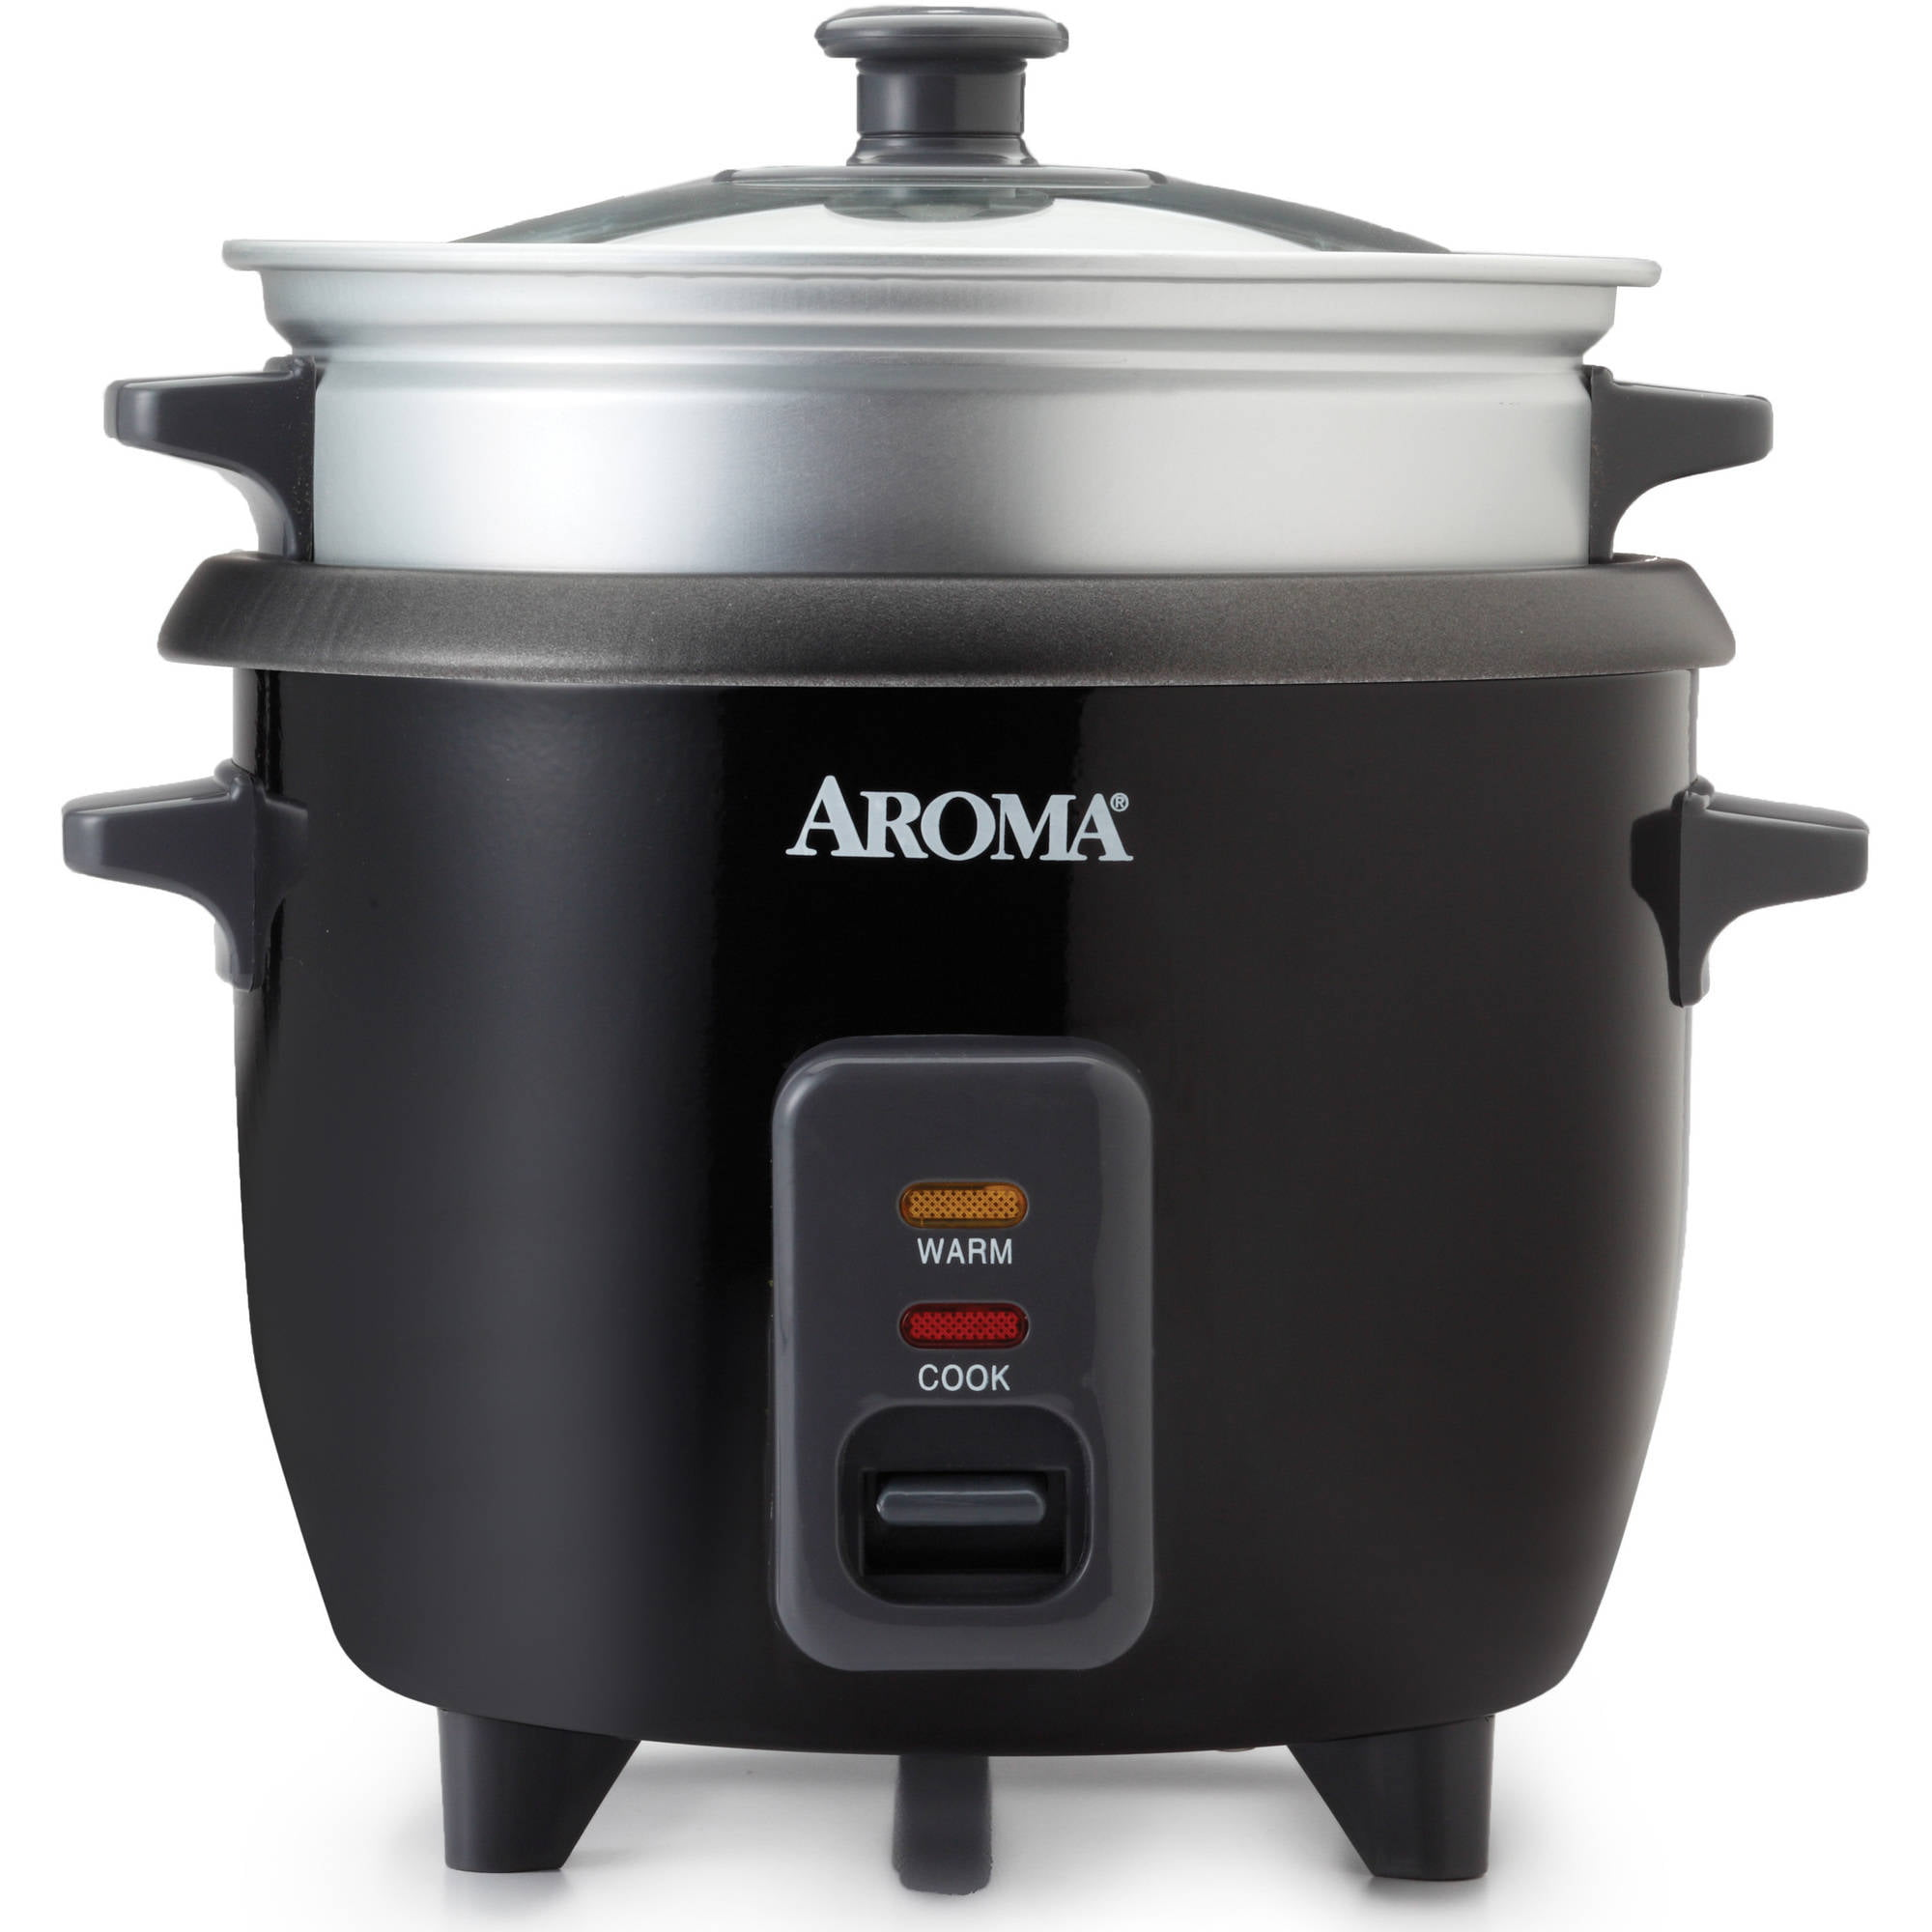 Aroma 6 Cup Rice Cooker And Food Steamer Black Walmartcom